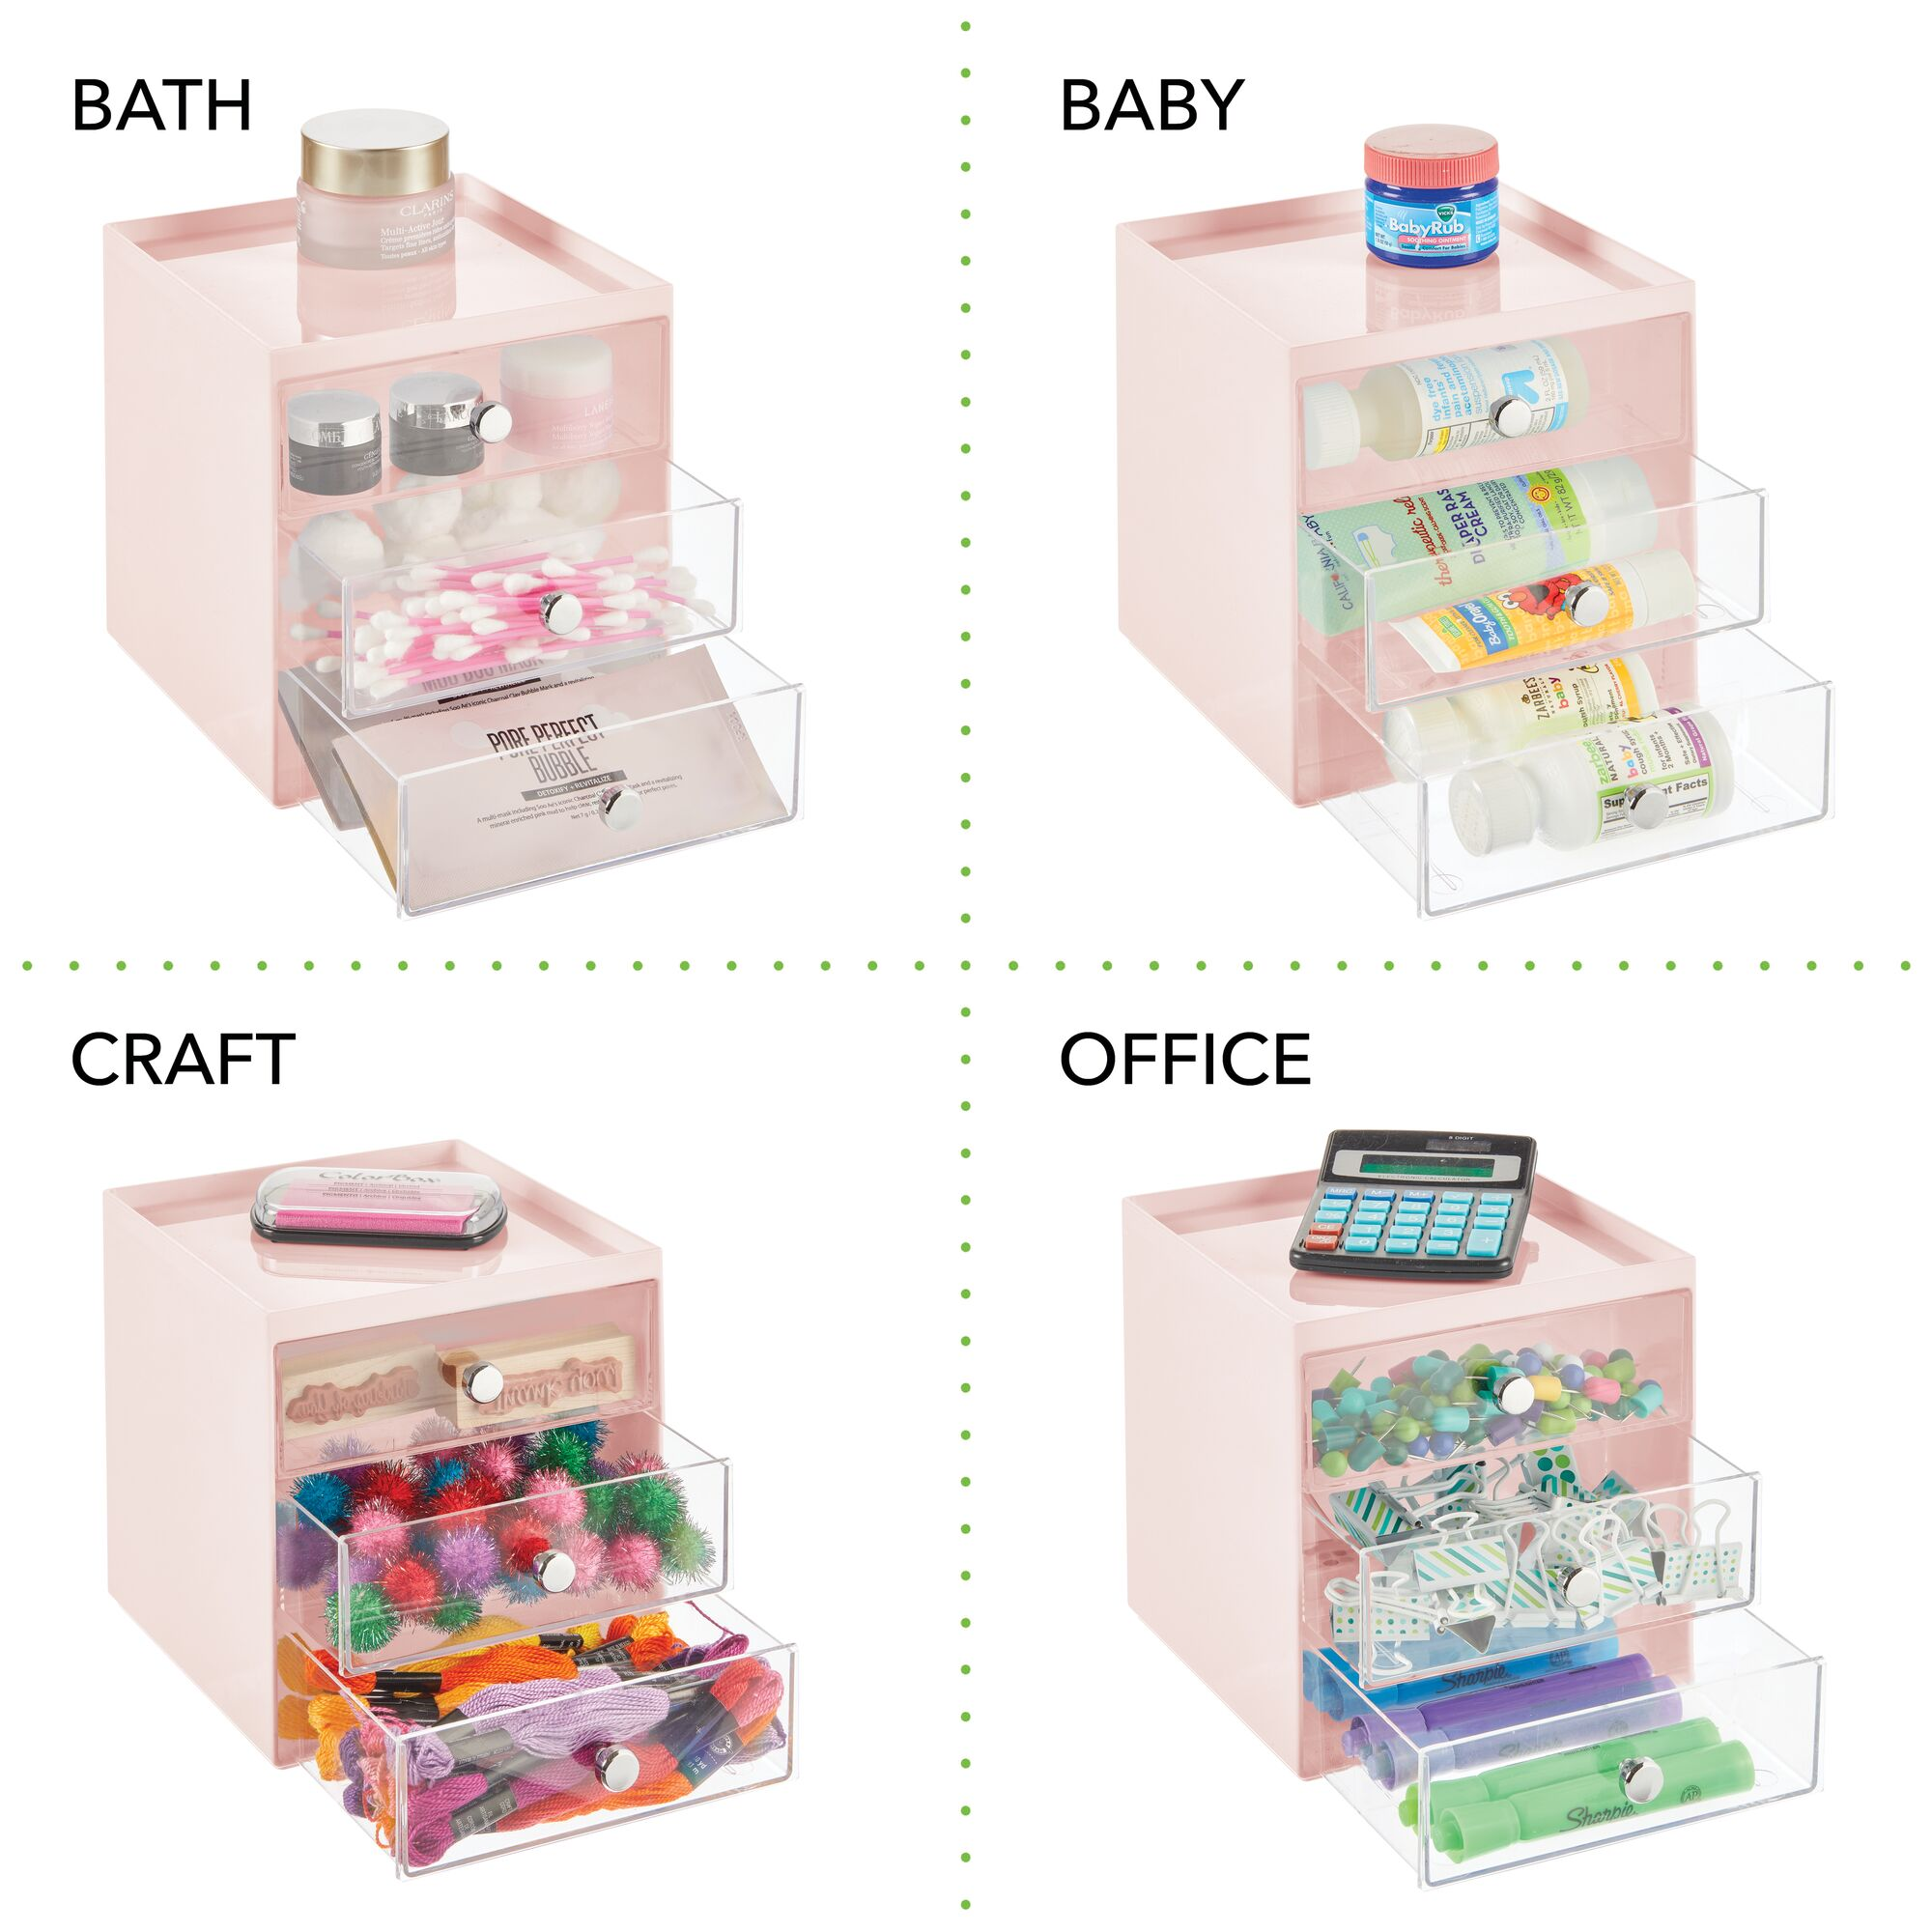 mDesign-Plastic-Makeup-Storage-Organizer-Cube-3-Drawers thumbnail 57